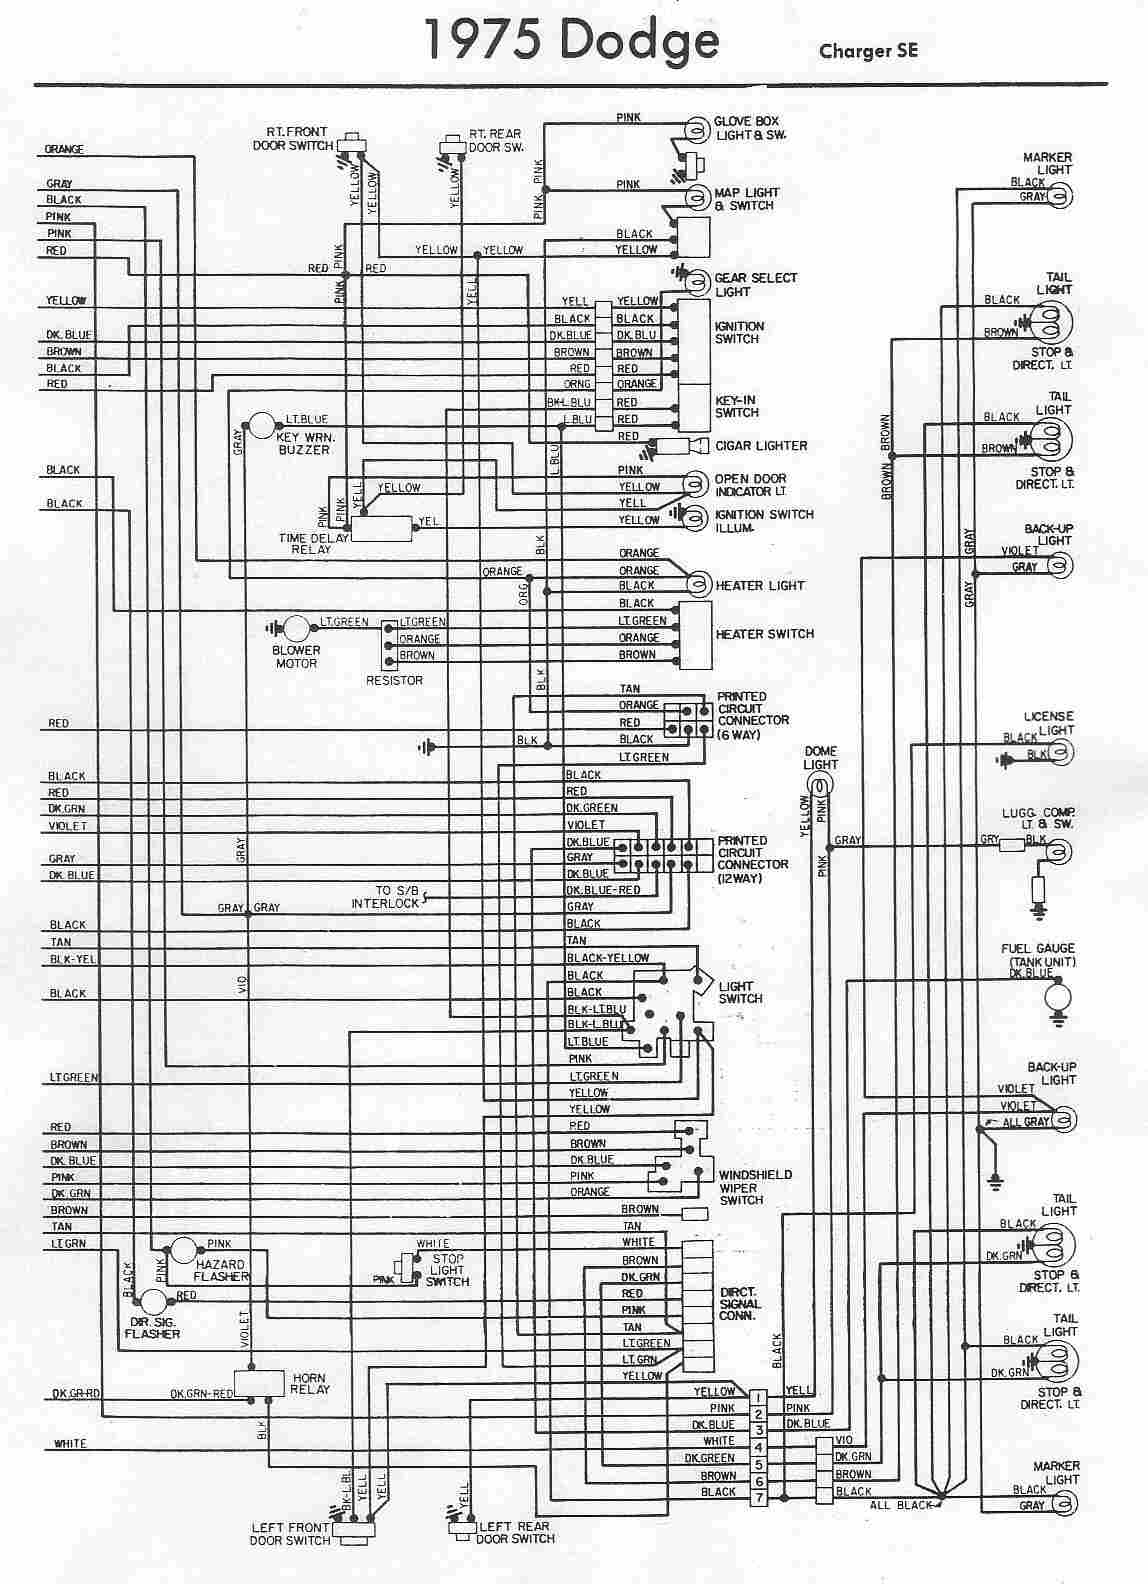 small resolution of 1975 dodge wiring diagram wiring diagram for you1975 dodge wiring diagram 4